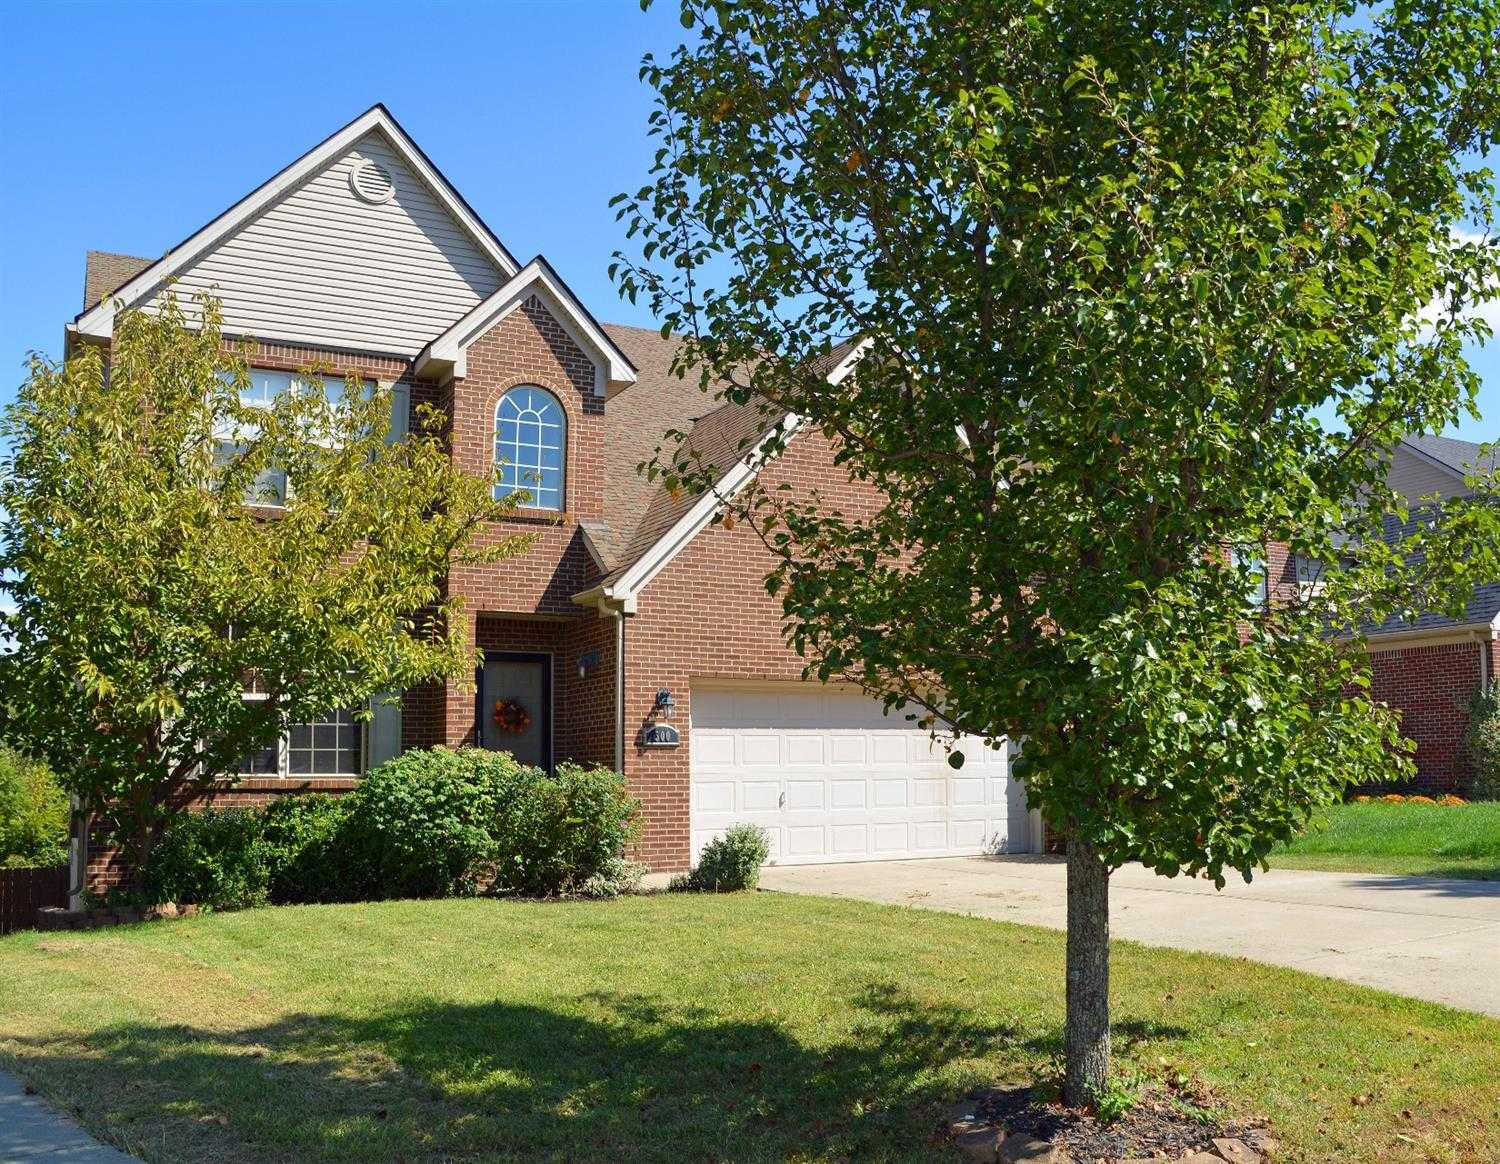 $299,900 - 4Br/4Ba -  for Sale in Chilesburg, Lexington